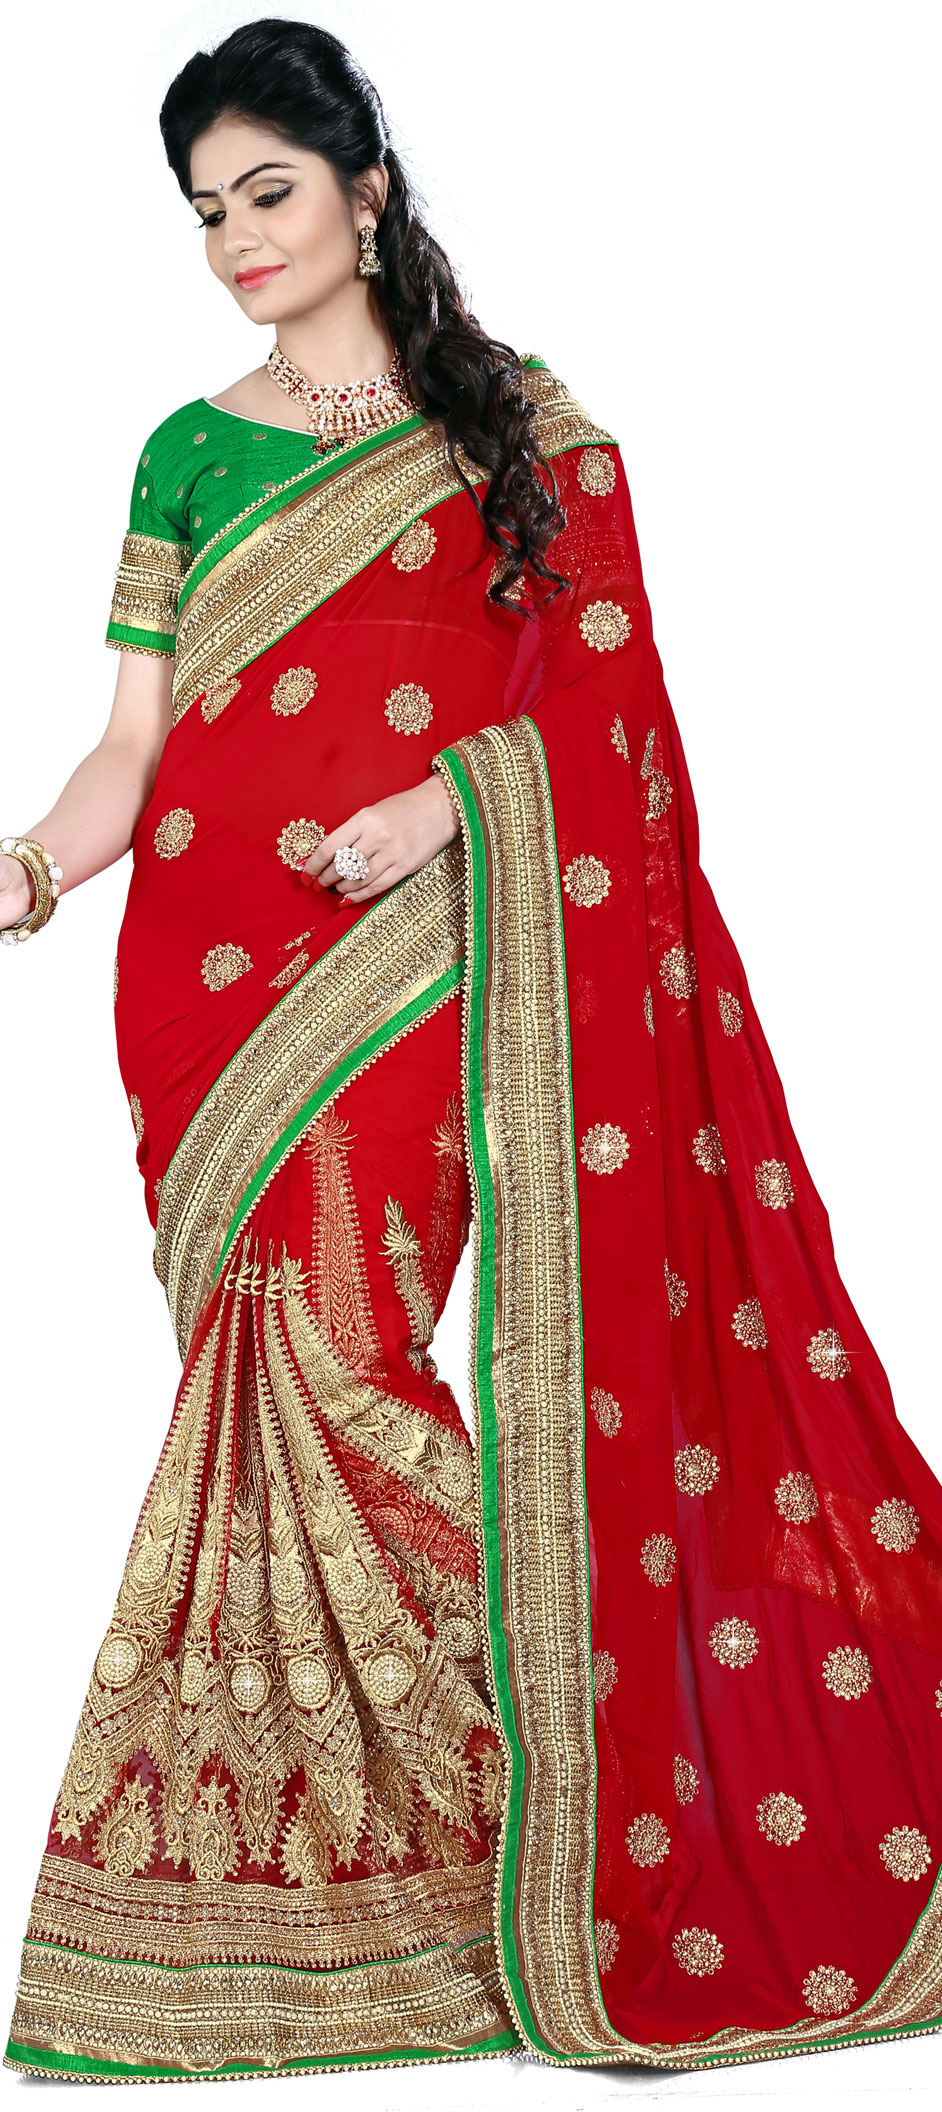 183409: Red and Maroon color family Embroidered Sarees, Party Wear ...